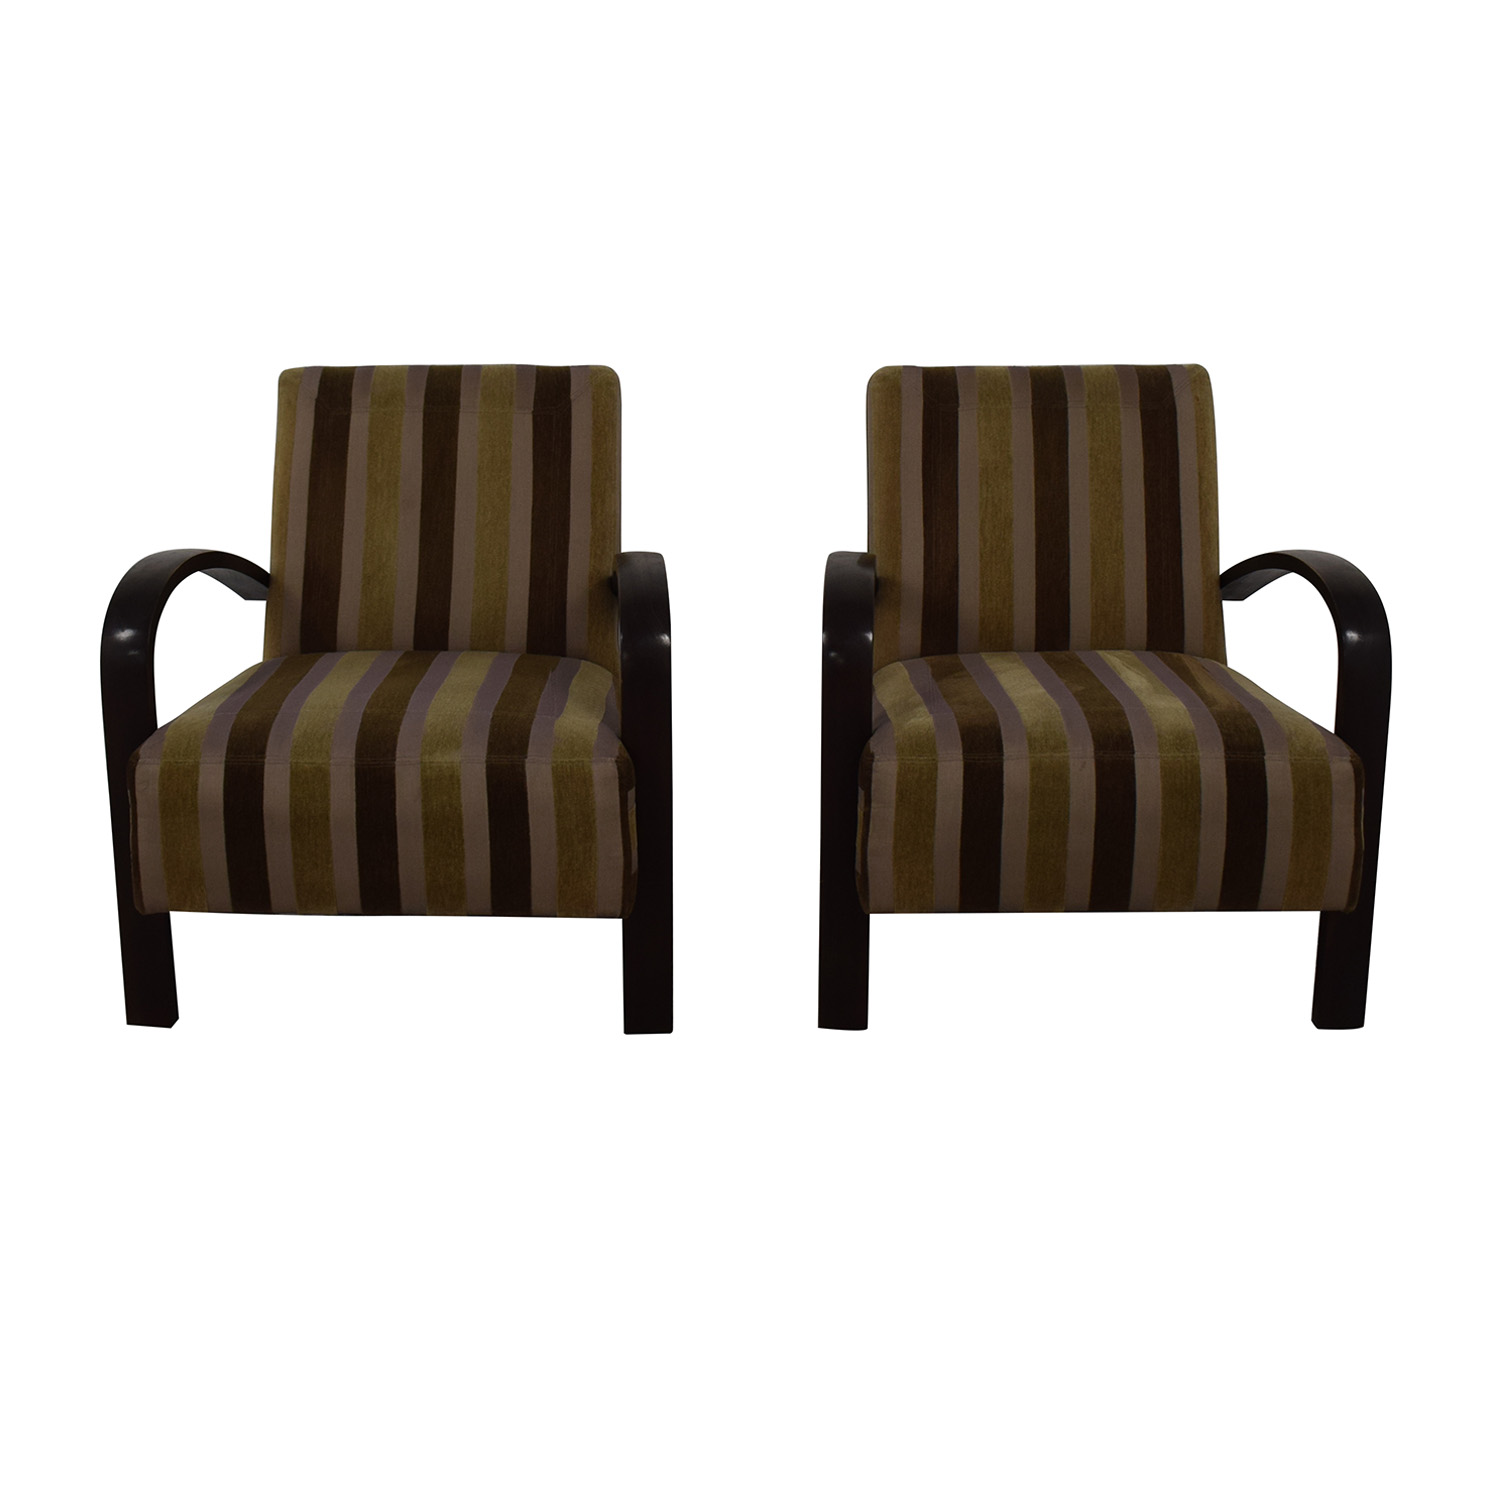 Merveilleux Buy Brown Striped Accent Chairs Chairs